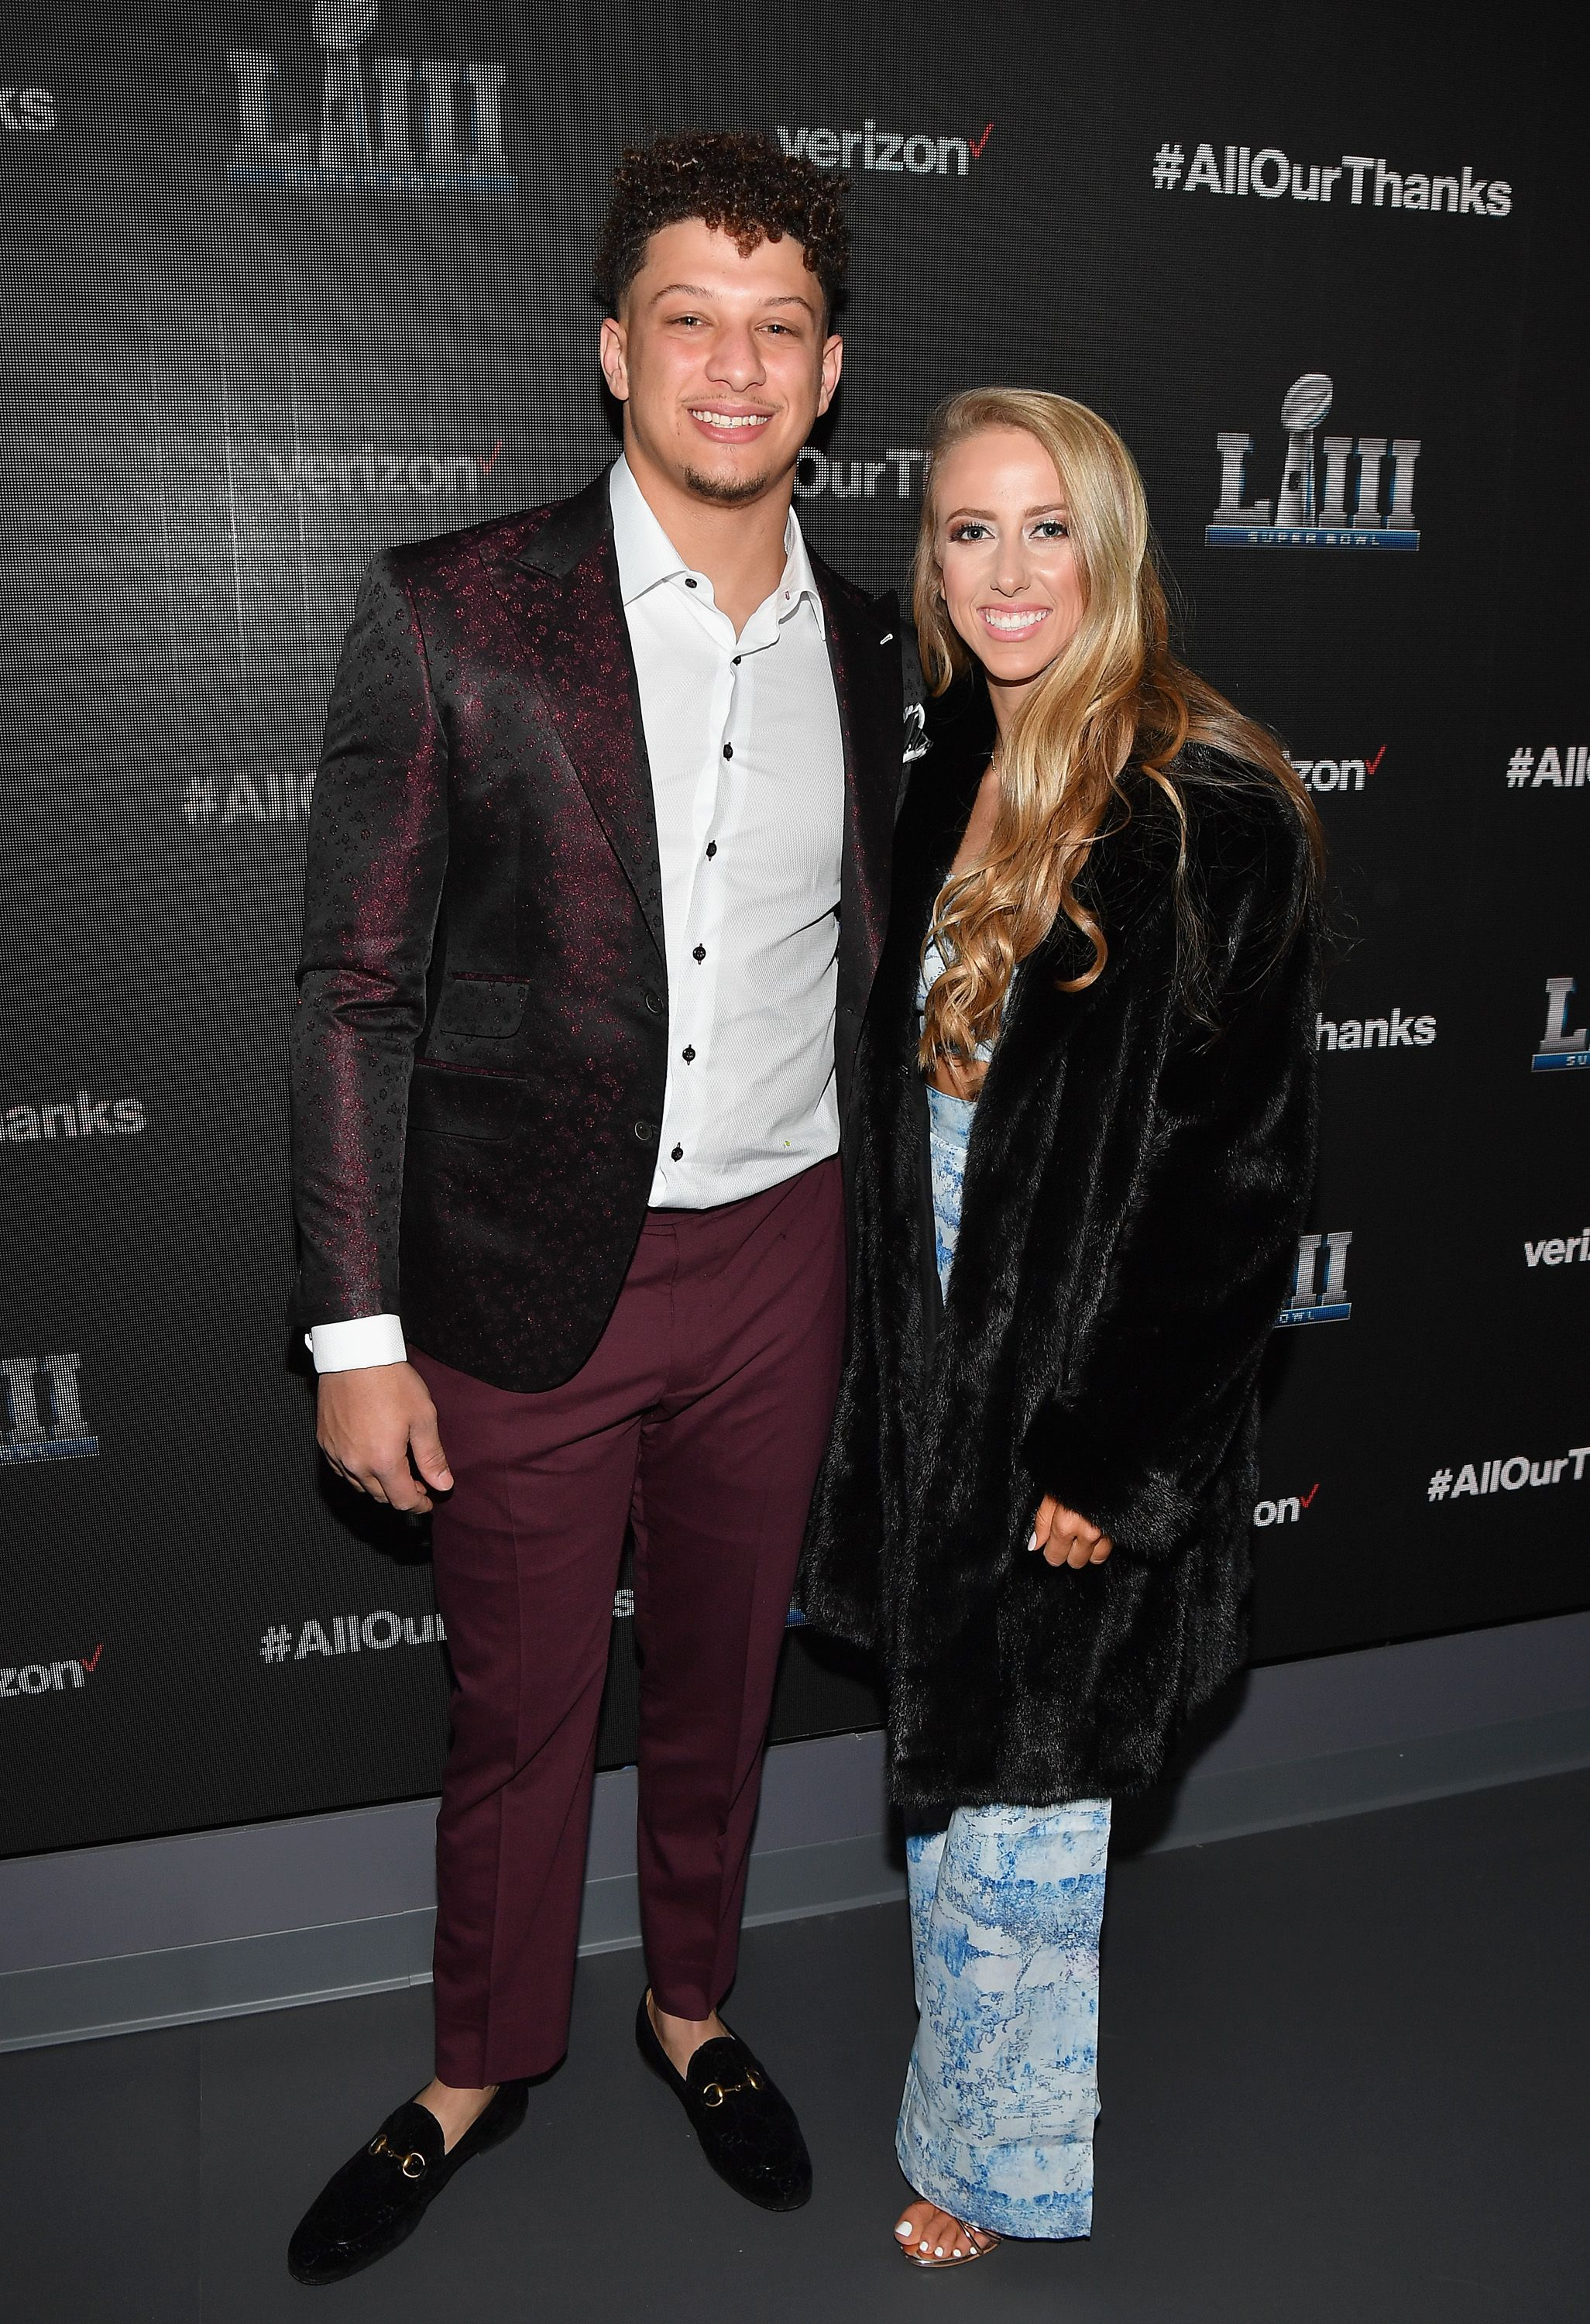 """Patrick Mahomes II and Brittany Matthews attend the world premiere event for """"The Team That Wouldn't Be Here"""" documentary hosted by Verizon on January 31, 2019   Photo: Getty Images"""